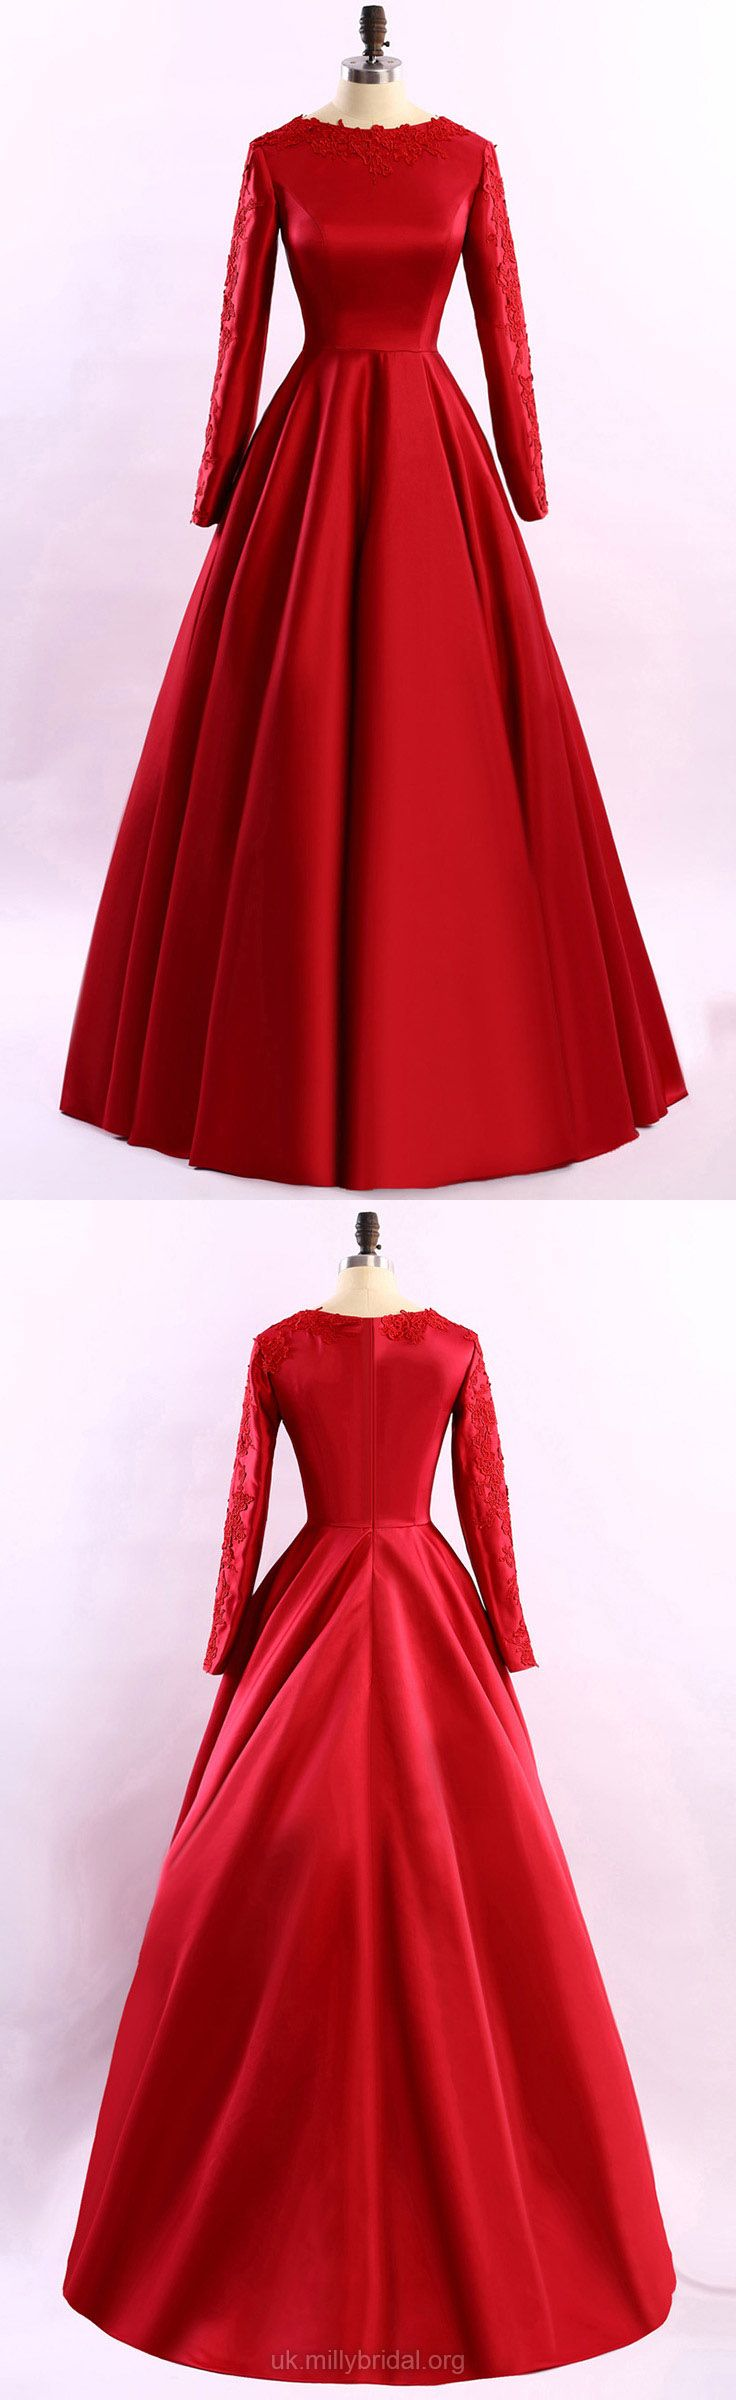 Red formal dresses long prom dresses with sleeves princess